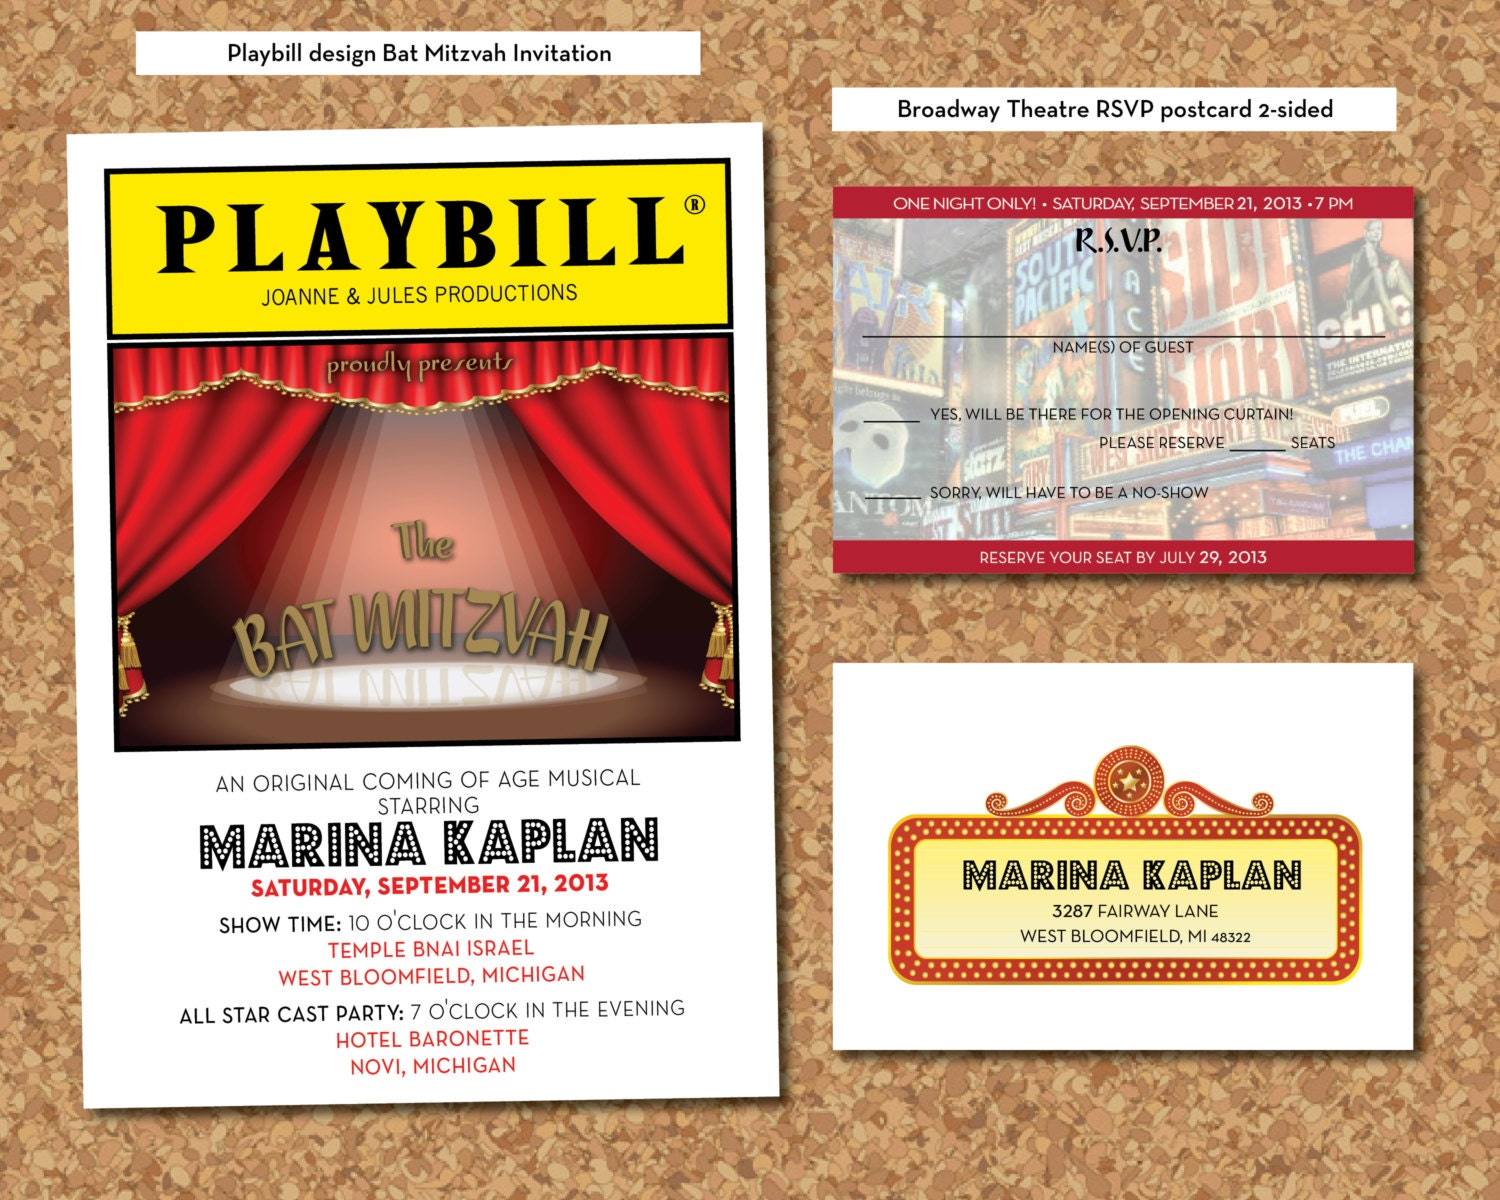 playbill theater bat mitzvah invitation  u0026 rsvp postcard by